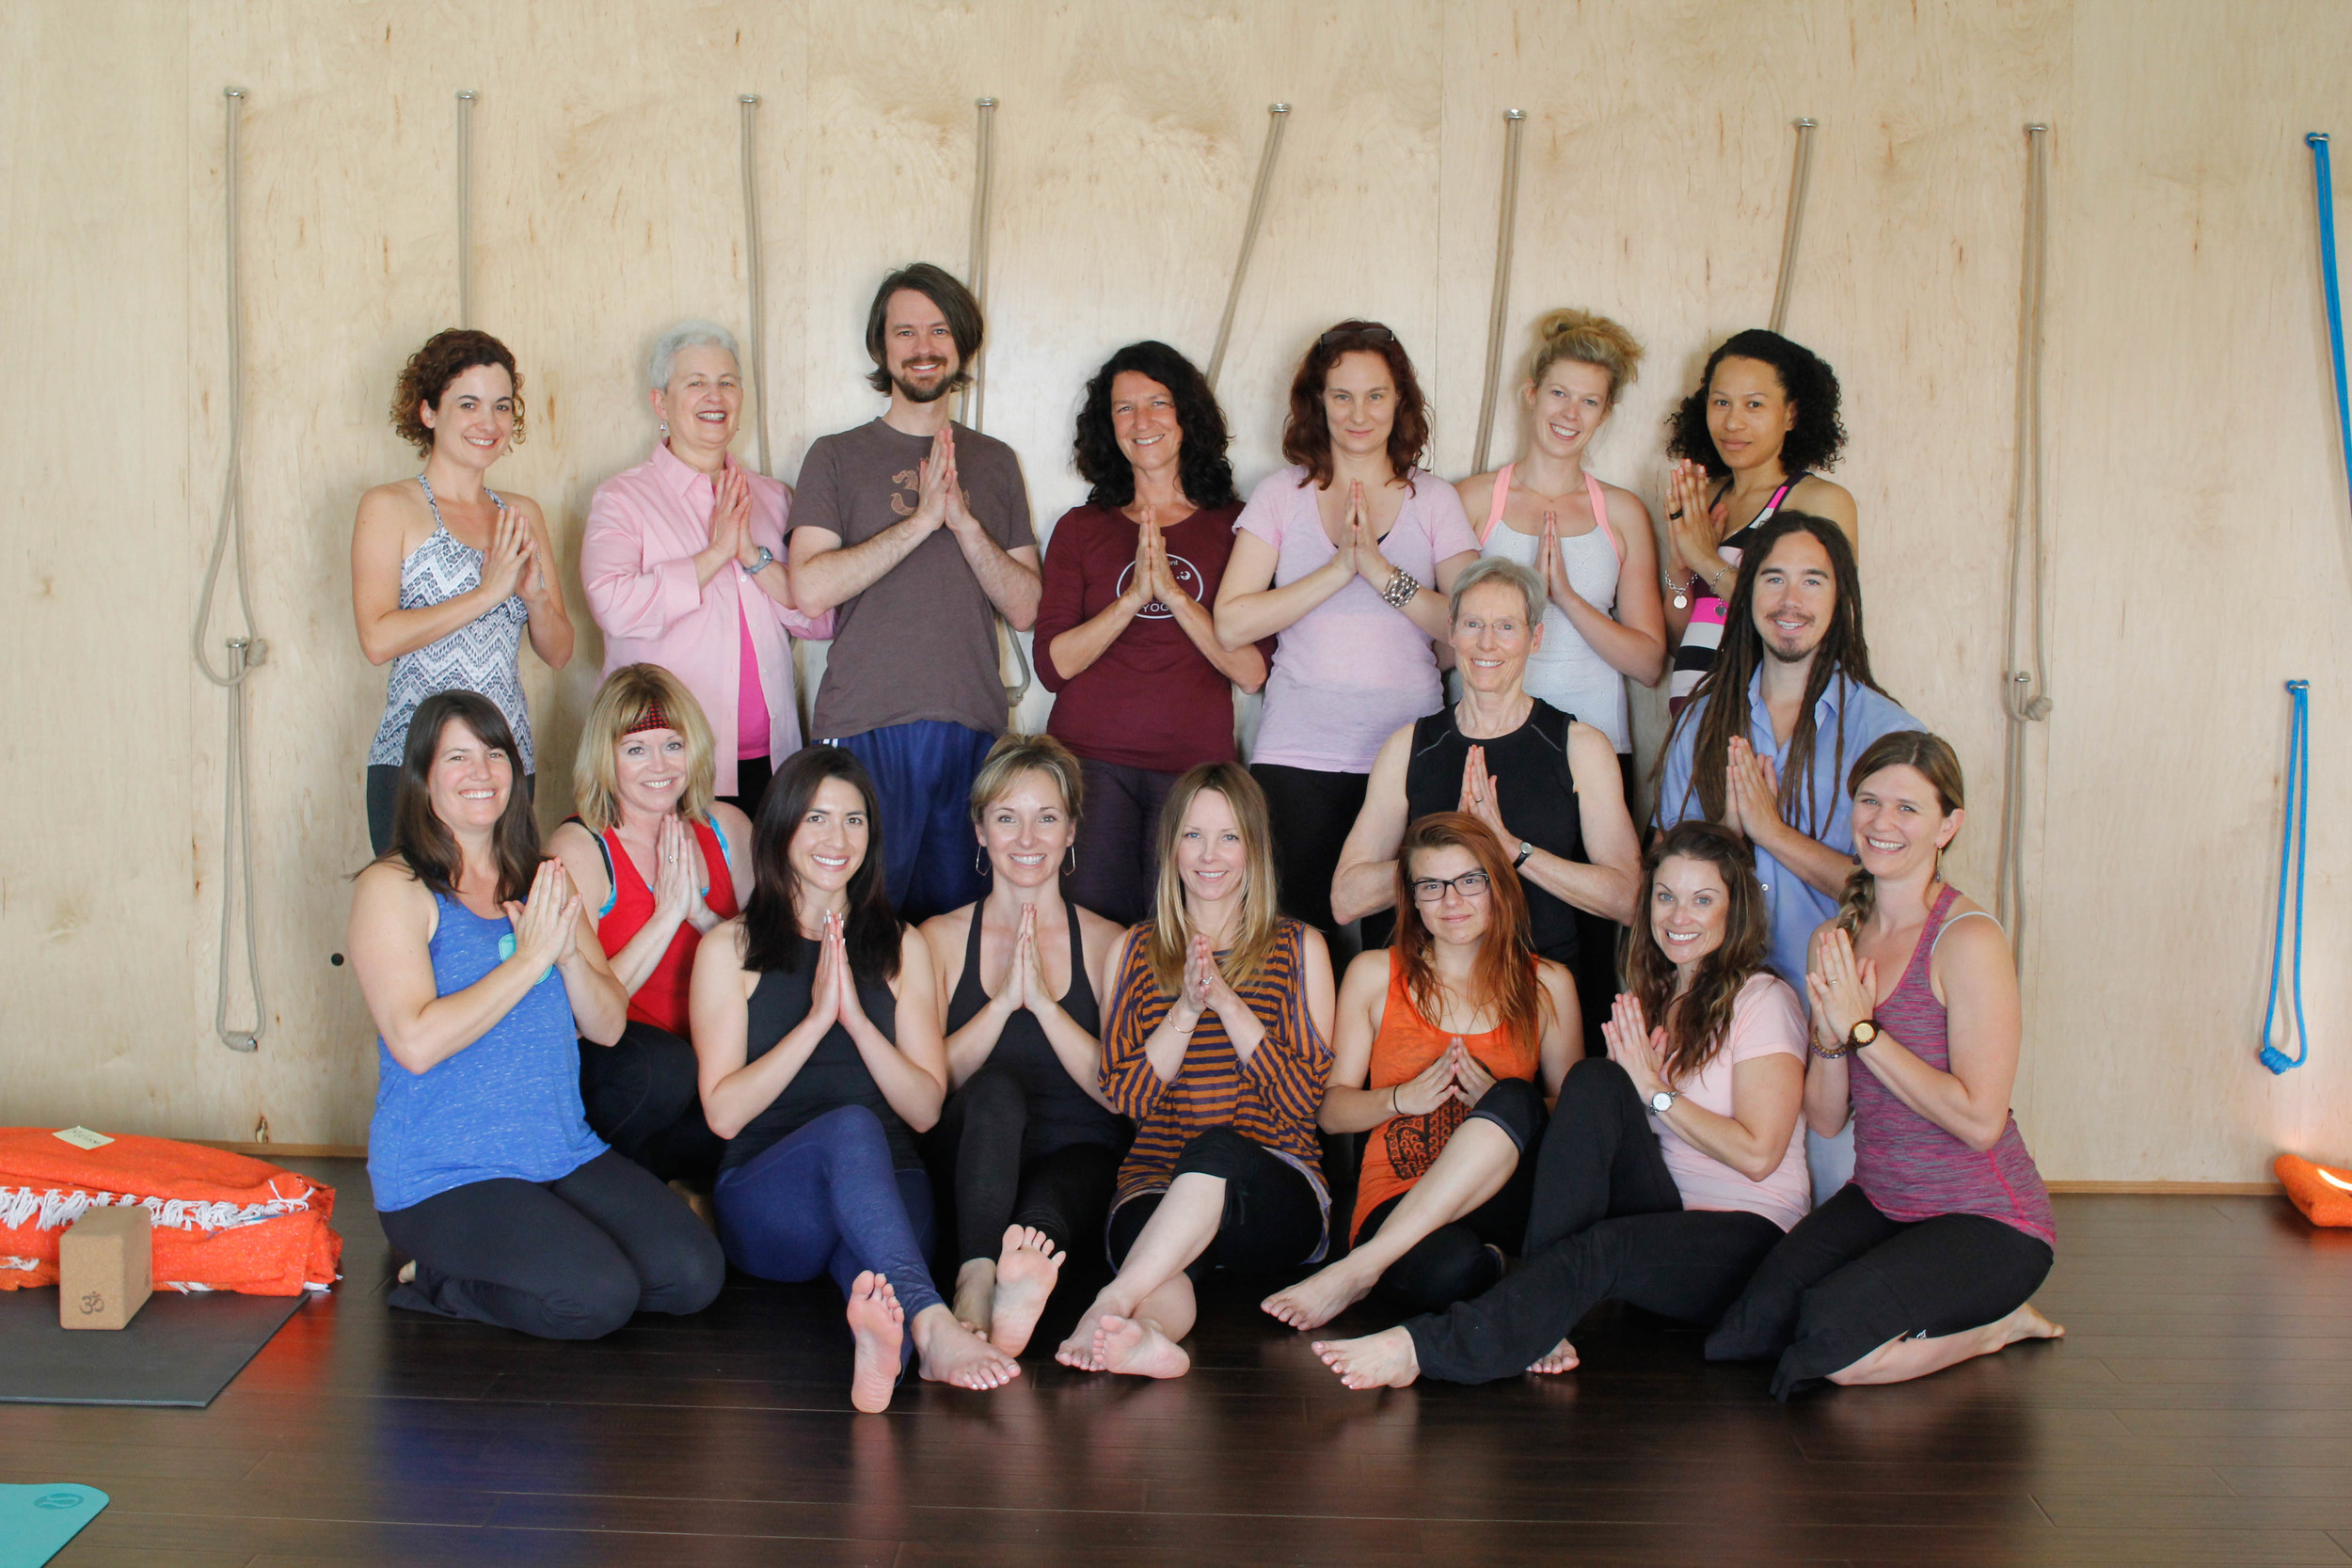 claremont-yoga-teacher-training-class-1.jpg